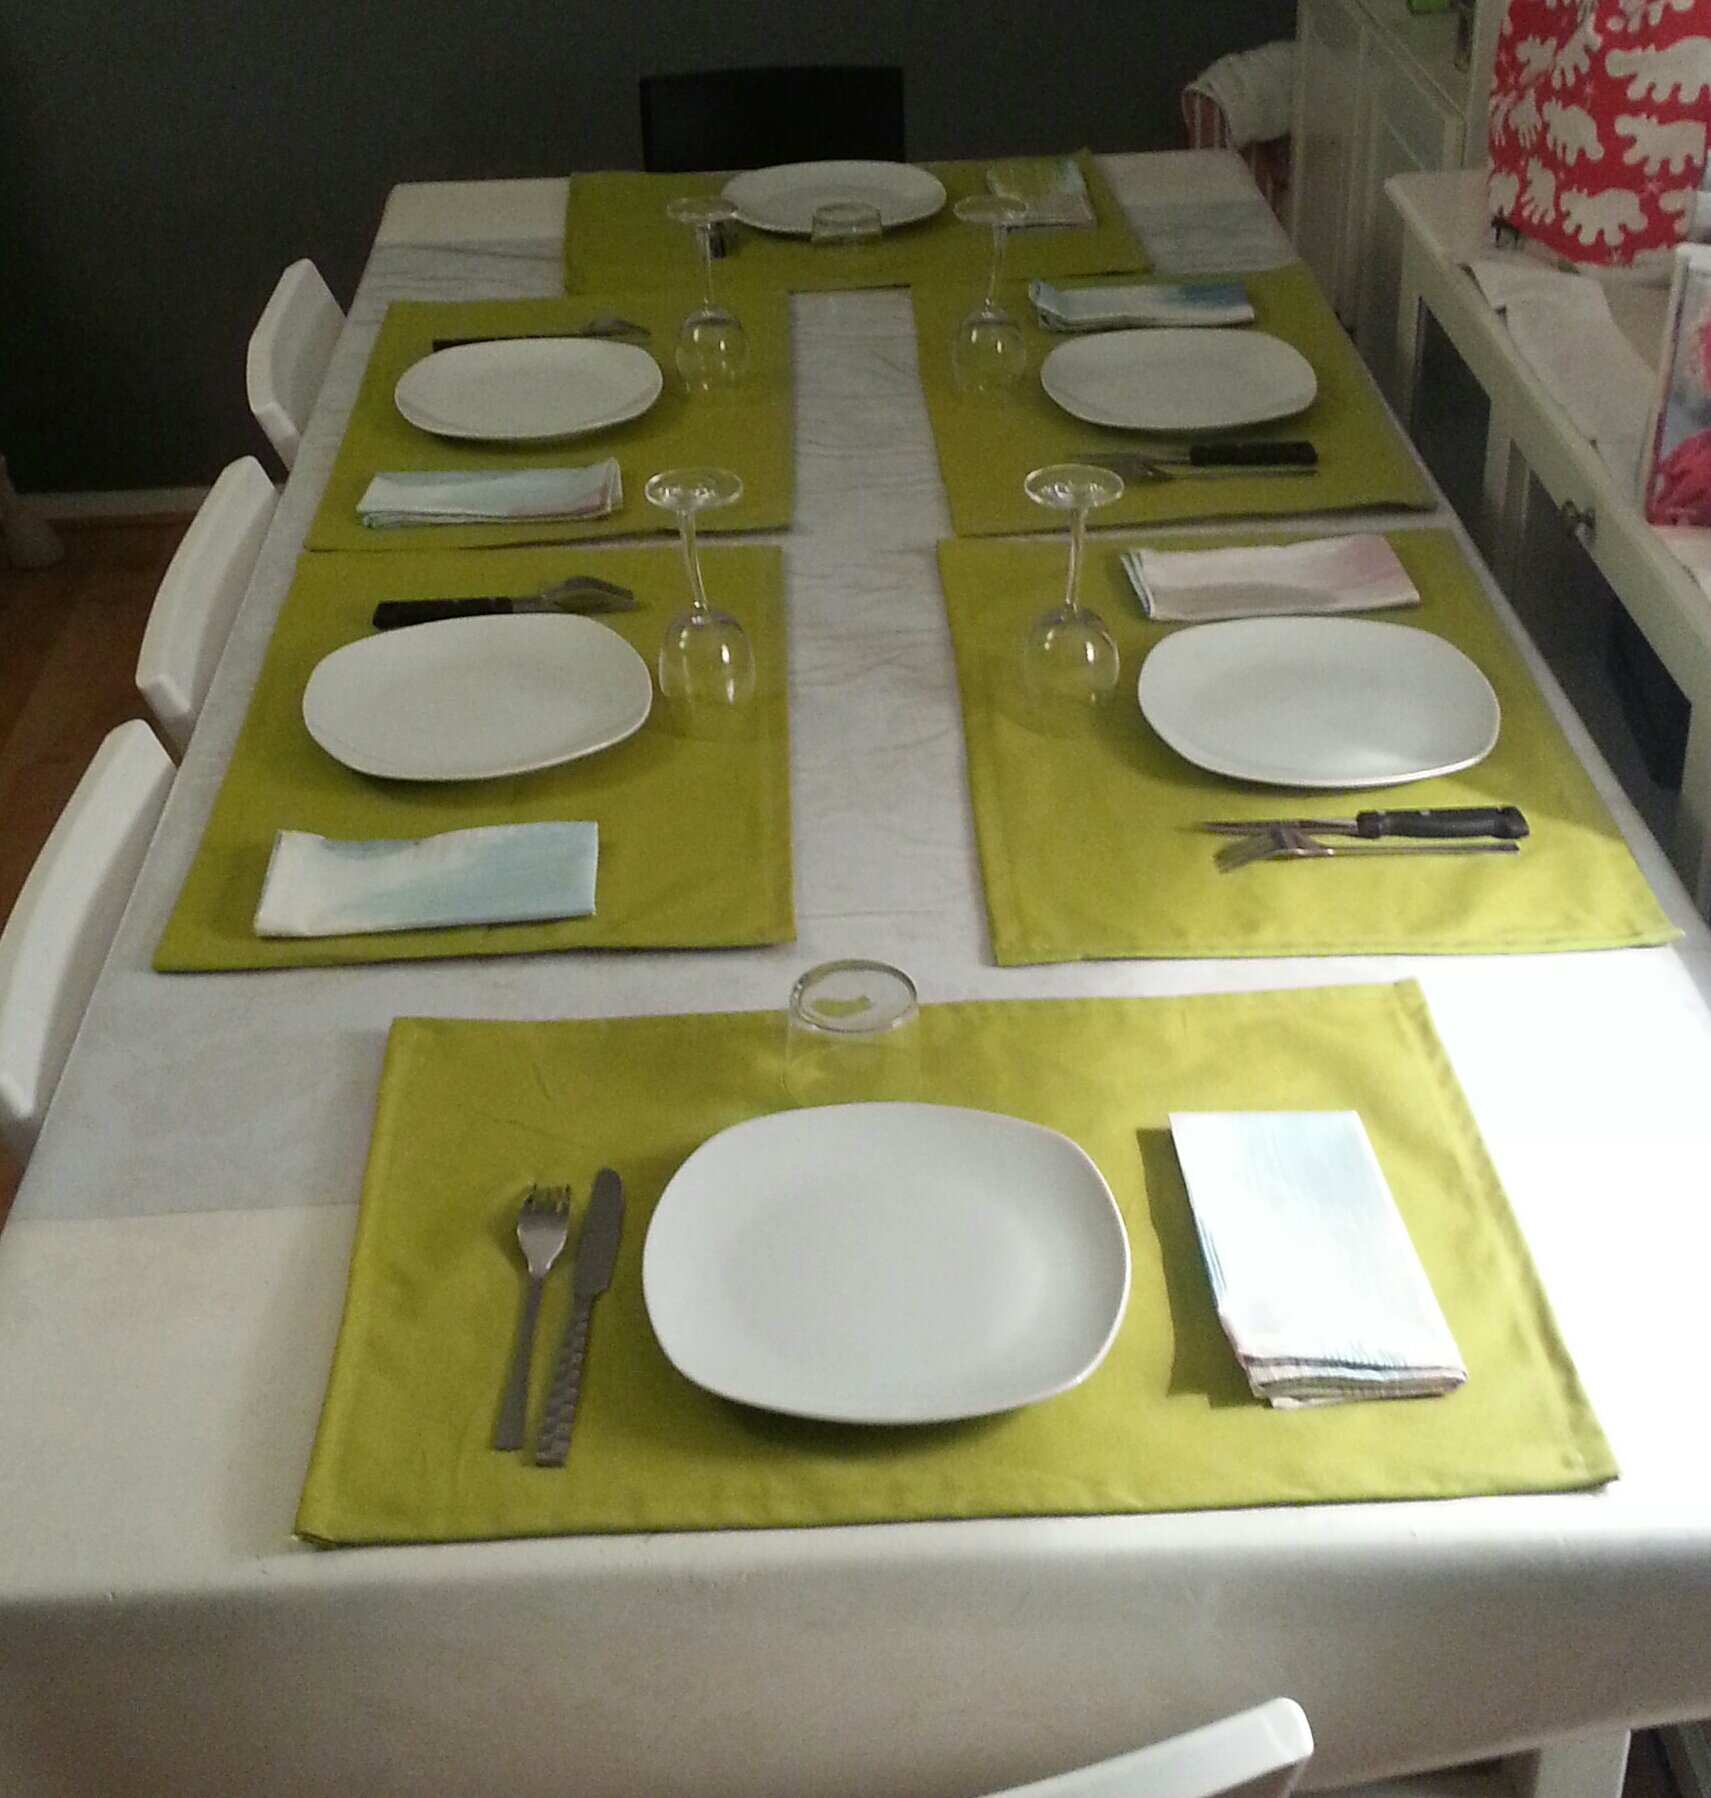 Des sets de table pour aller avec les serviettes for Un set de table